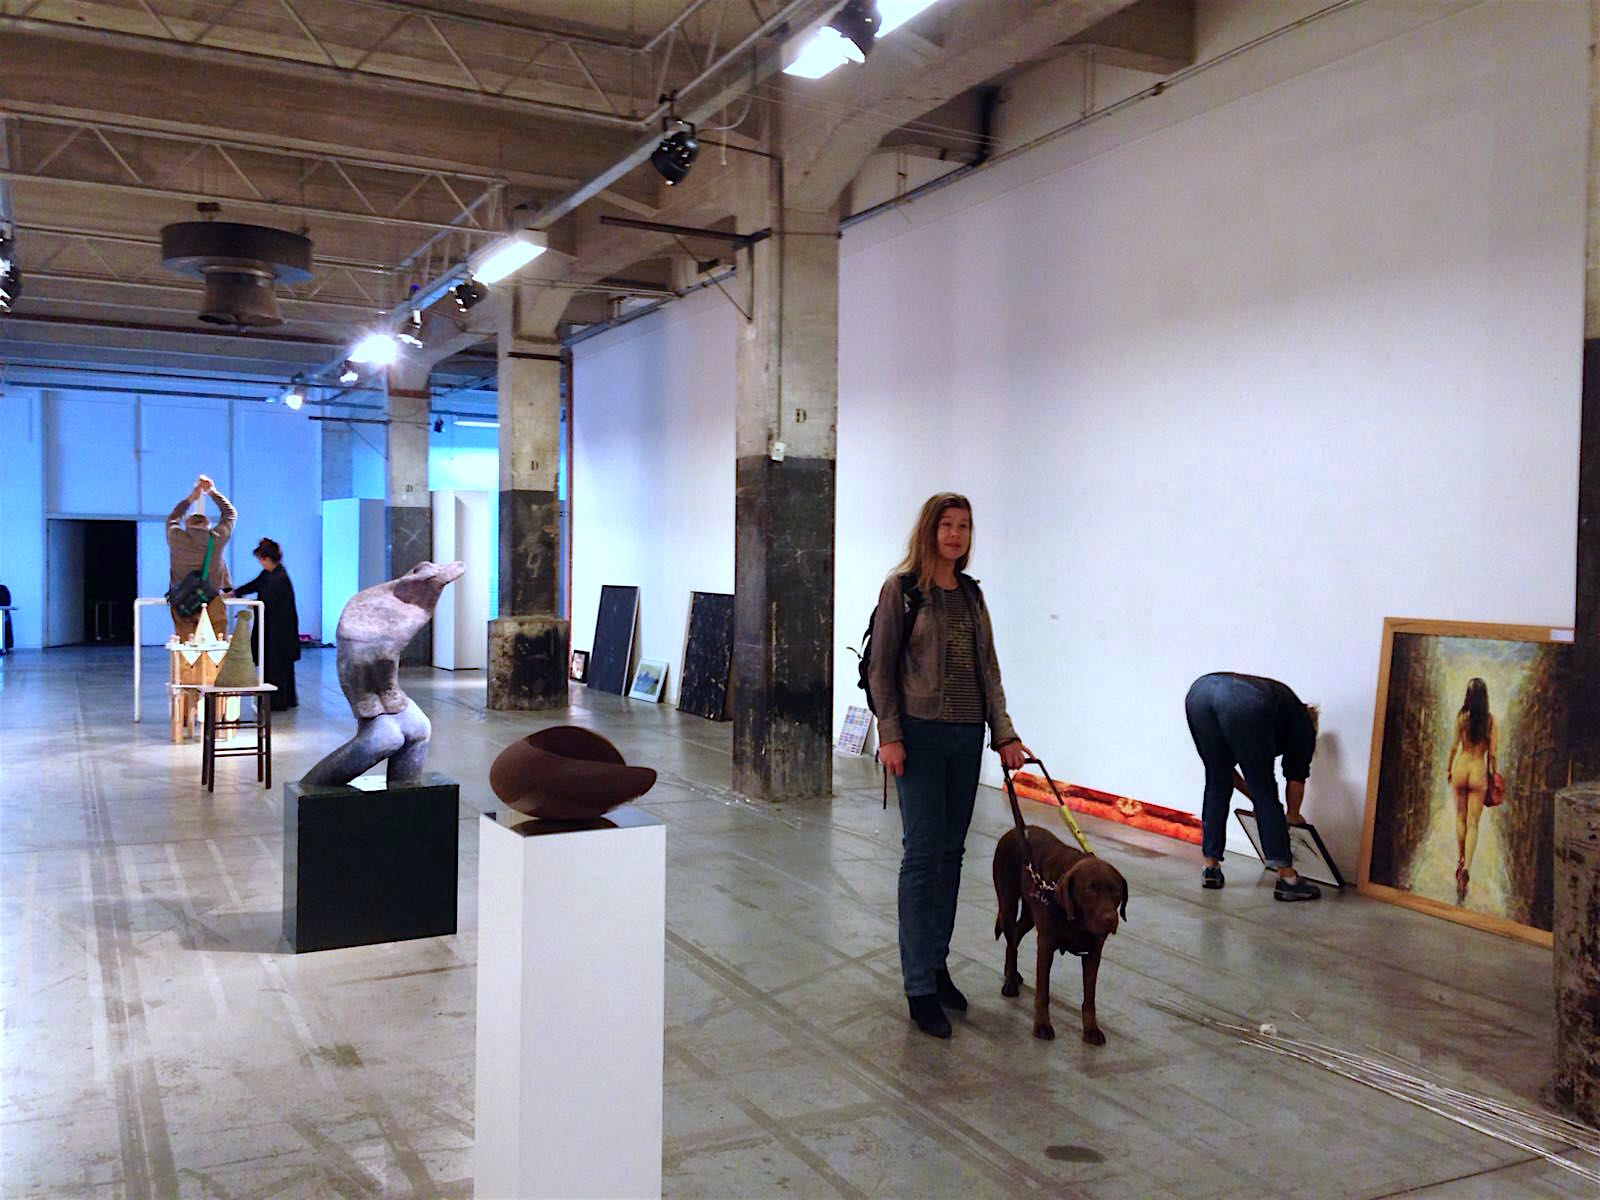 Photo shows Laura Meddens and her guide dog Nugget checking the preparations for the Open Ateliers Oost exhibition this Saturday and Sunday at the SBK Gallery in Amsterdam. Photo by Helen Pappa Hoitsma.